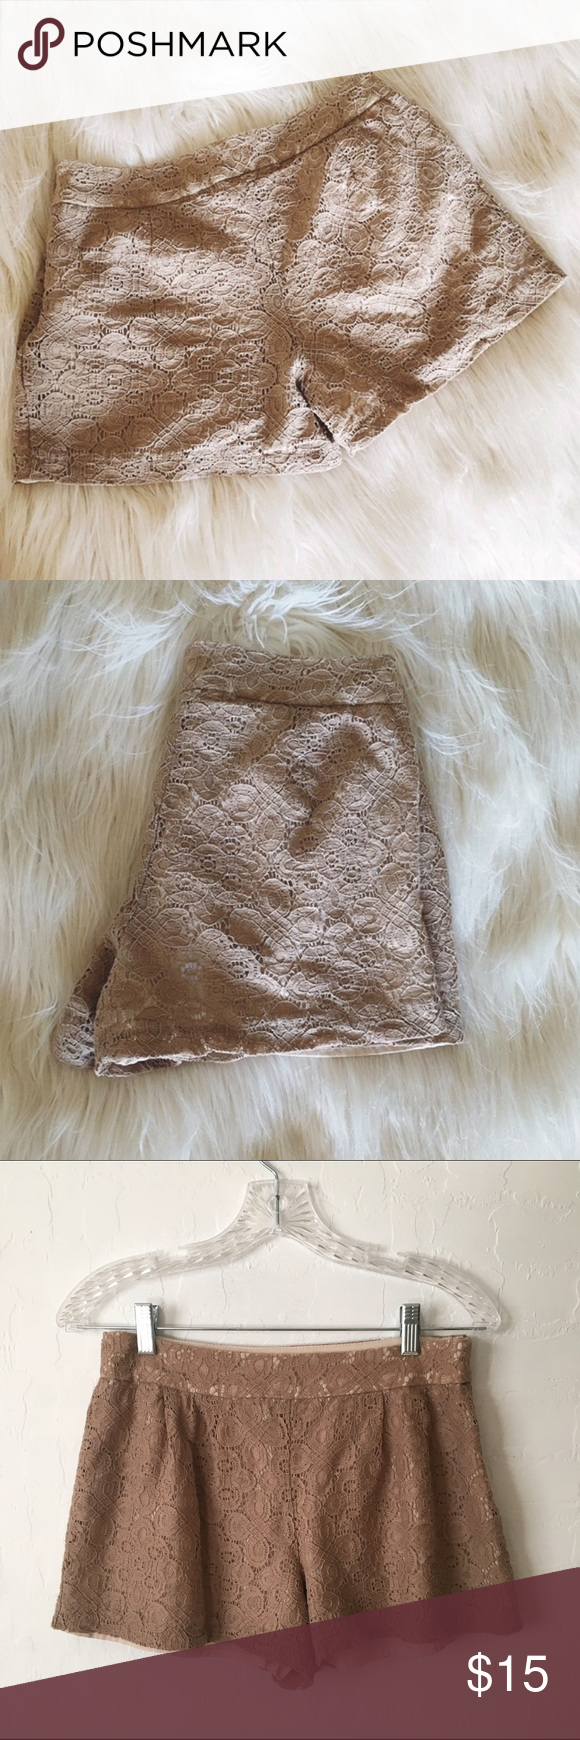 """Lace Shorts Pretty little lace shorts. Beautiful detailing, beige in color. 11"""" long, 14"""" wide (flatlay). Next day shipping. Forever 21 Shorts"""